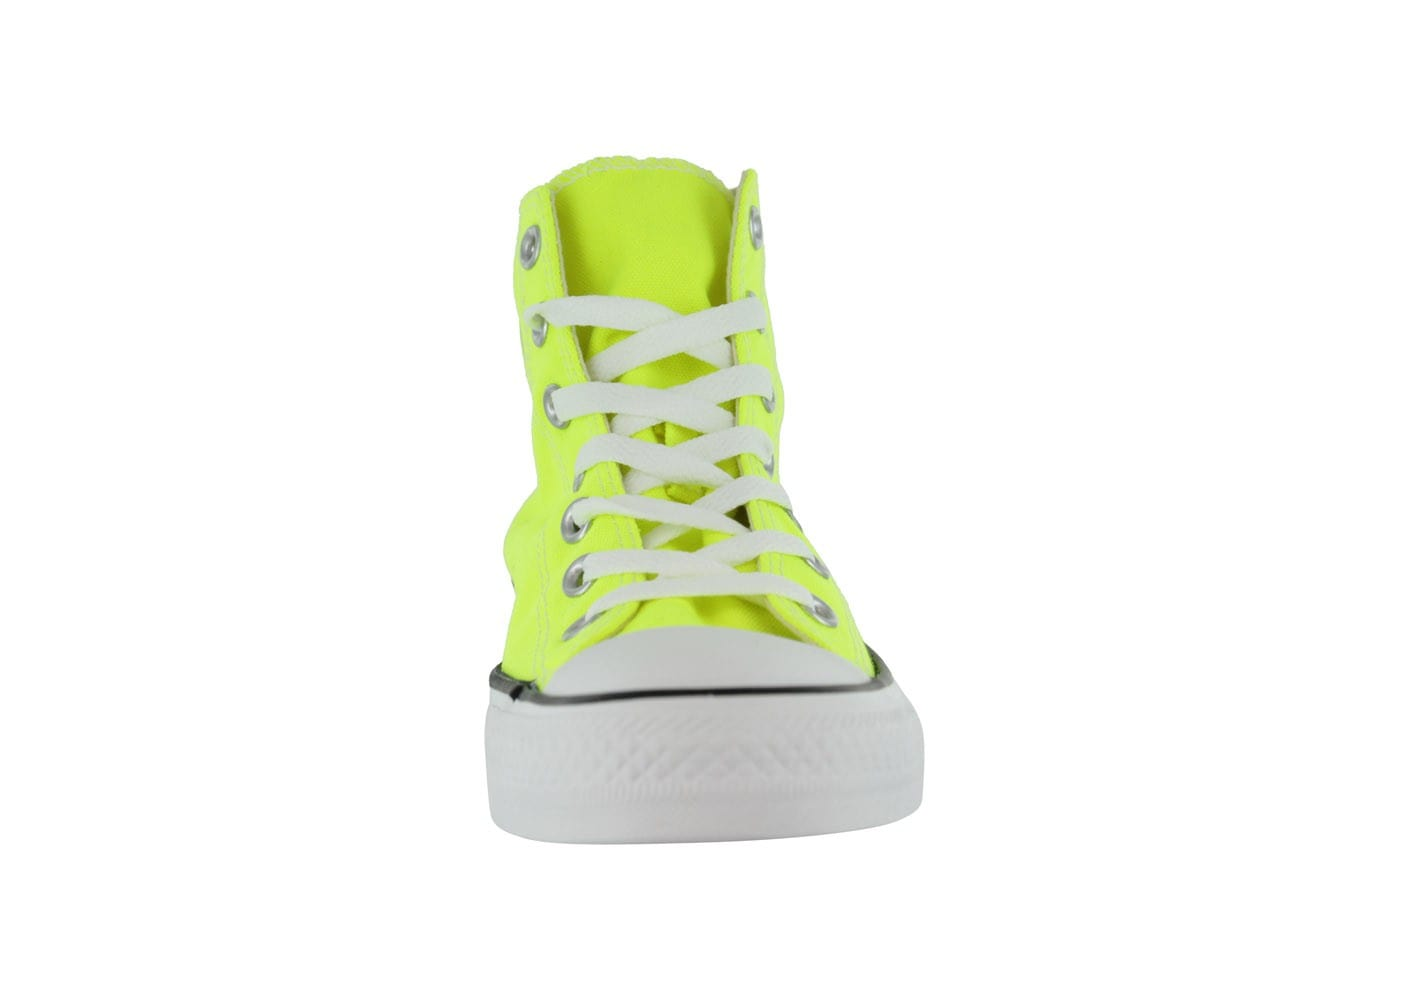 Converse Chuck Taylor All Star jaune fluo - Chaussures ...